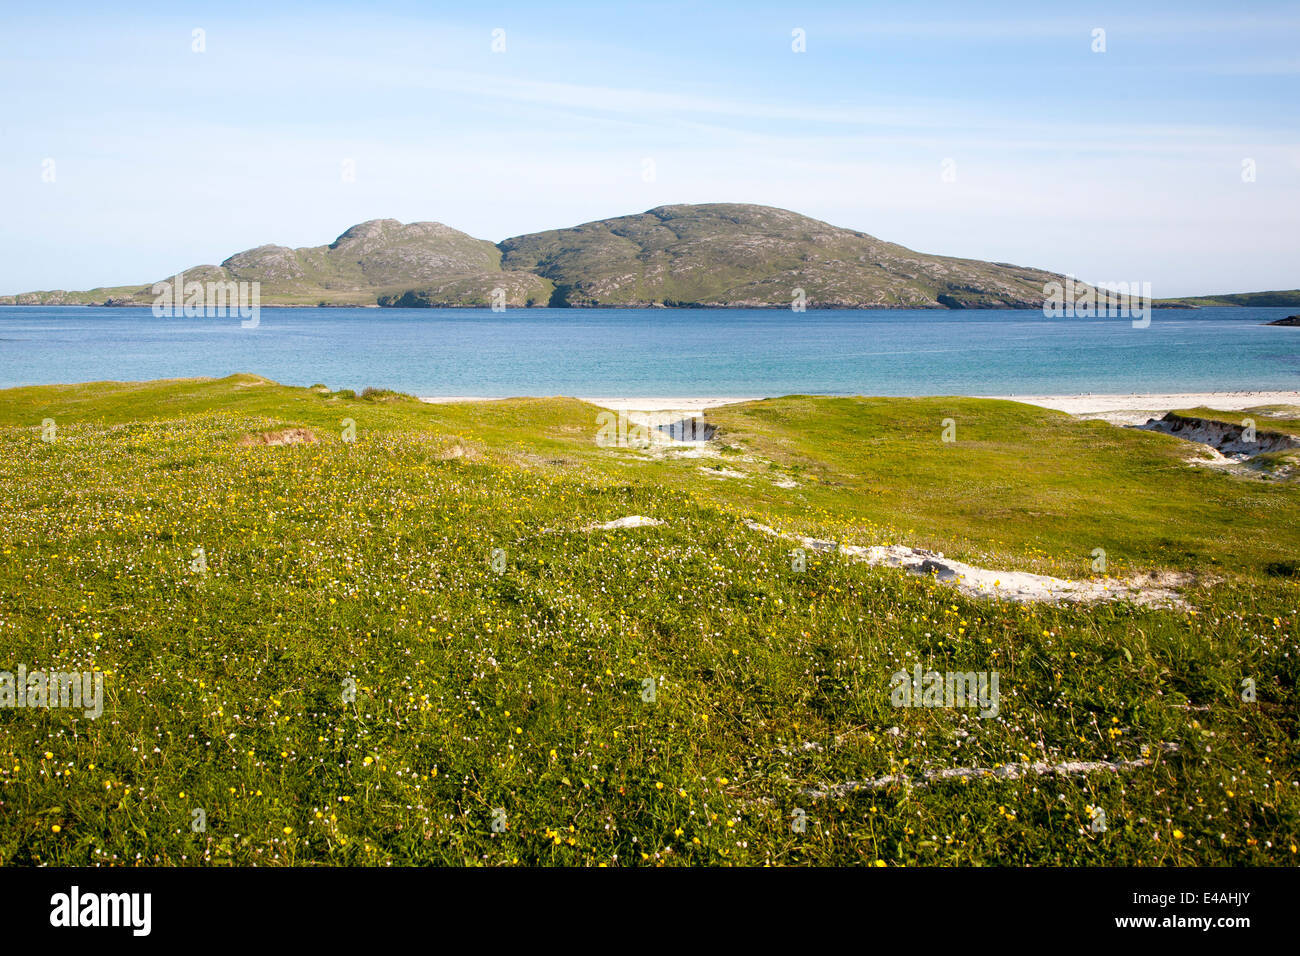 Island of Sandray from Vatersay Isle of Barra, Outer Hebrides, Scotland - Stock Image